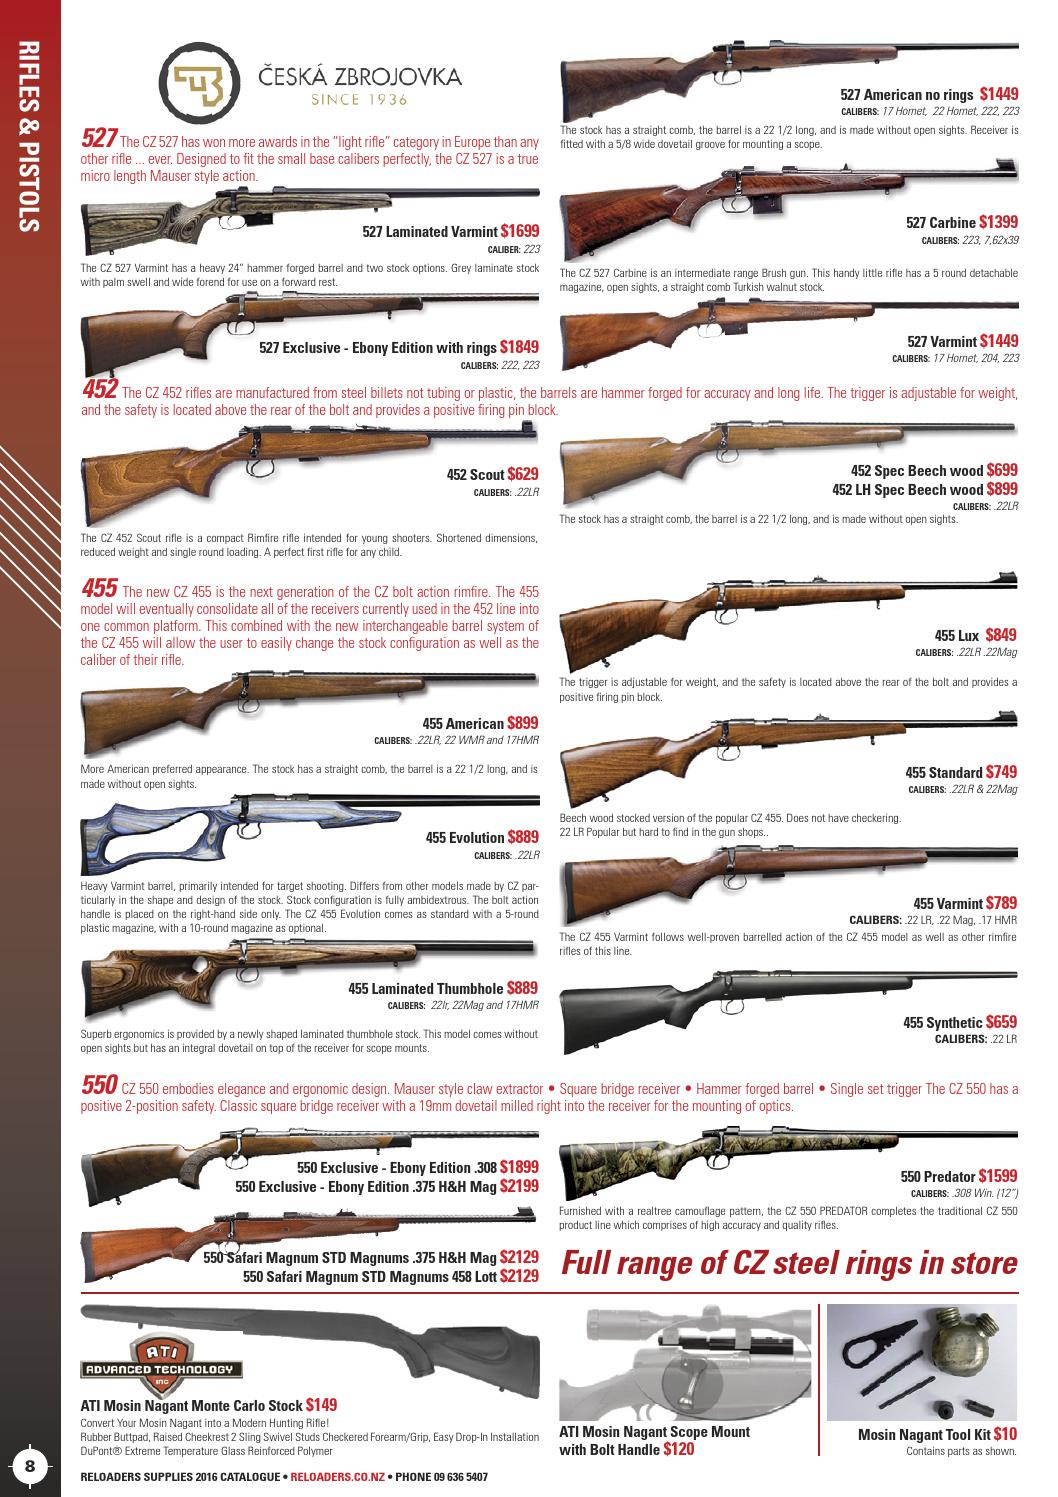 Reloaders Shooters Supplies Catalogue 2016 by Hurst Media